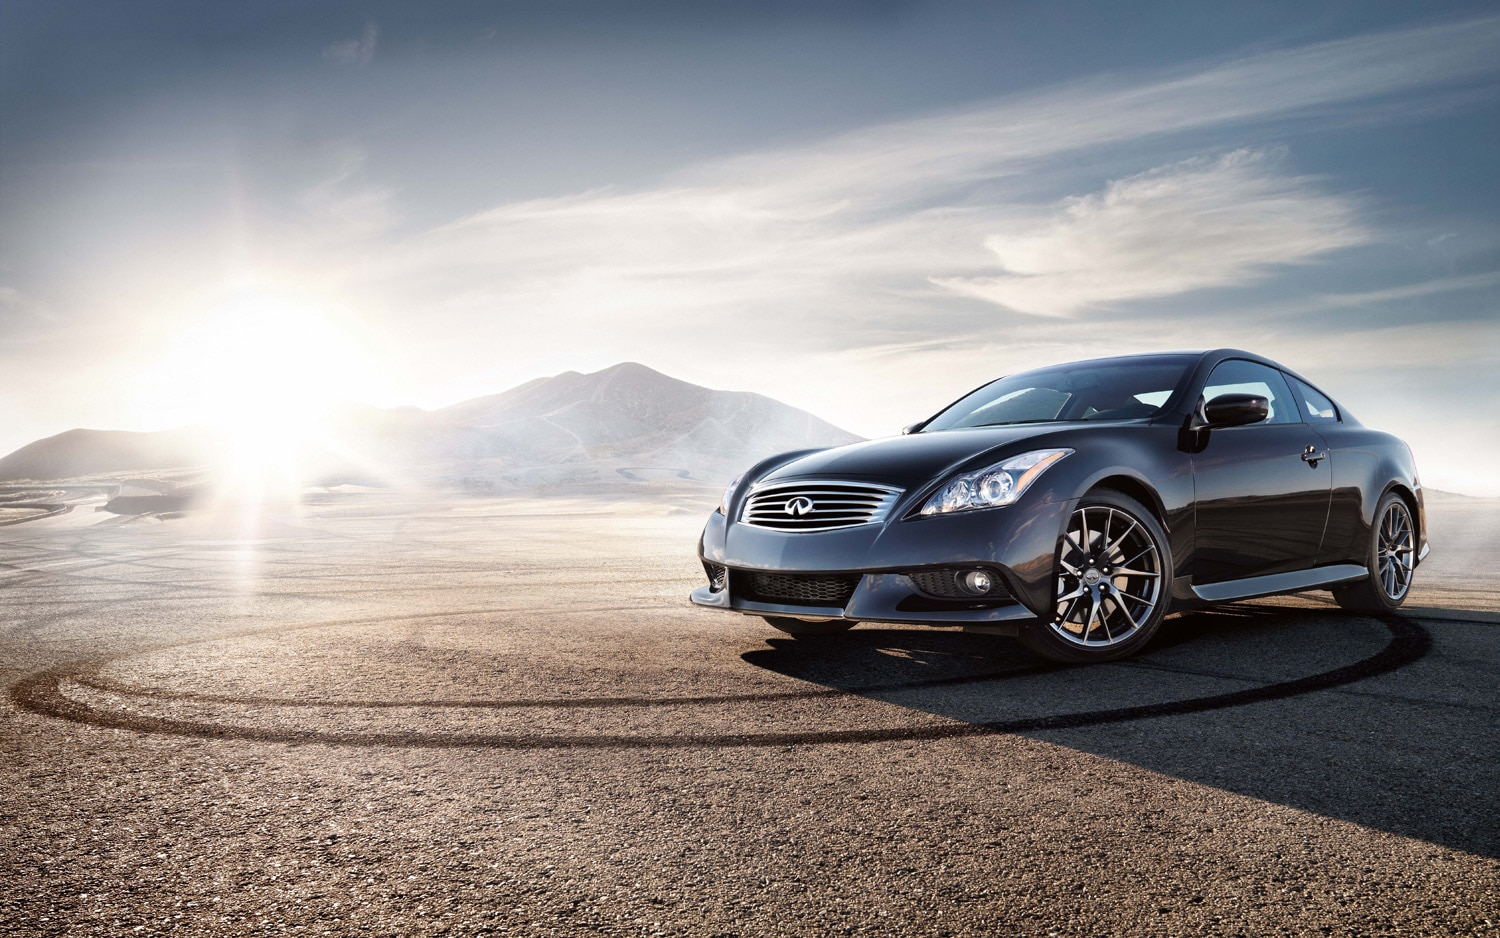 2012 Infiniti G37 IPL Coupe Front Three Quarter1